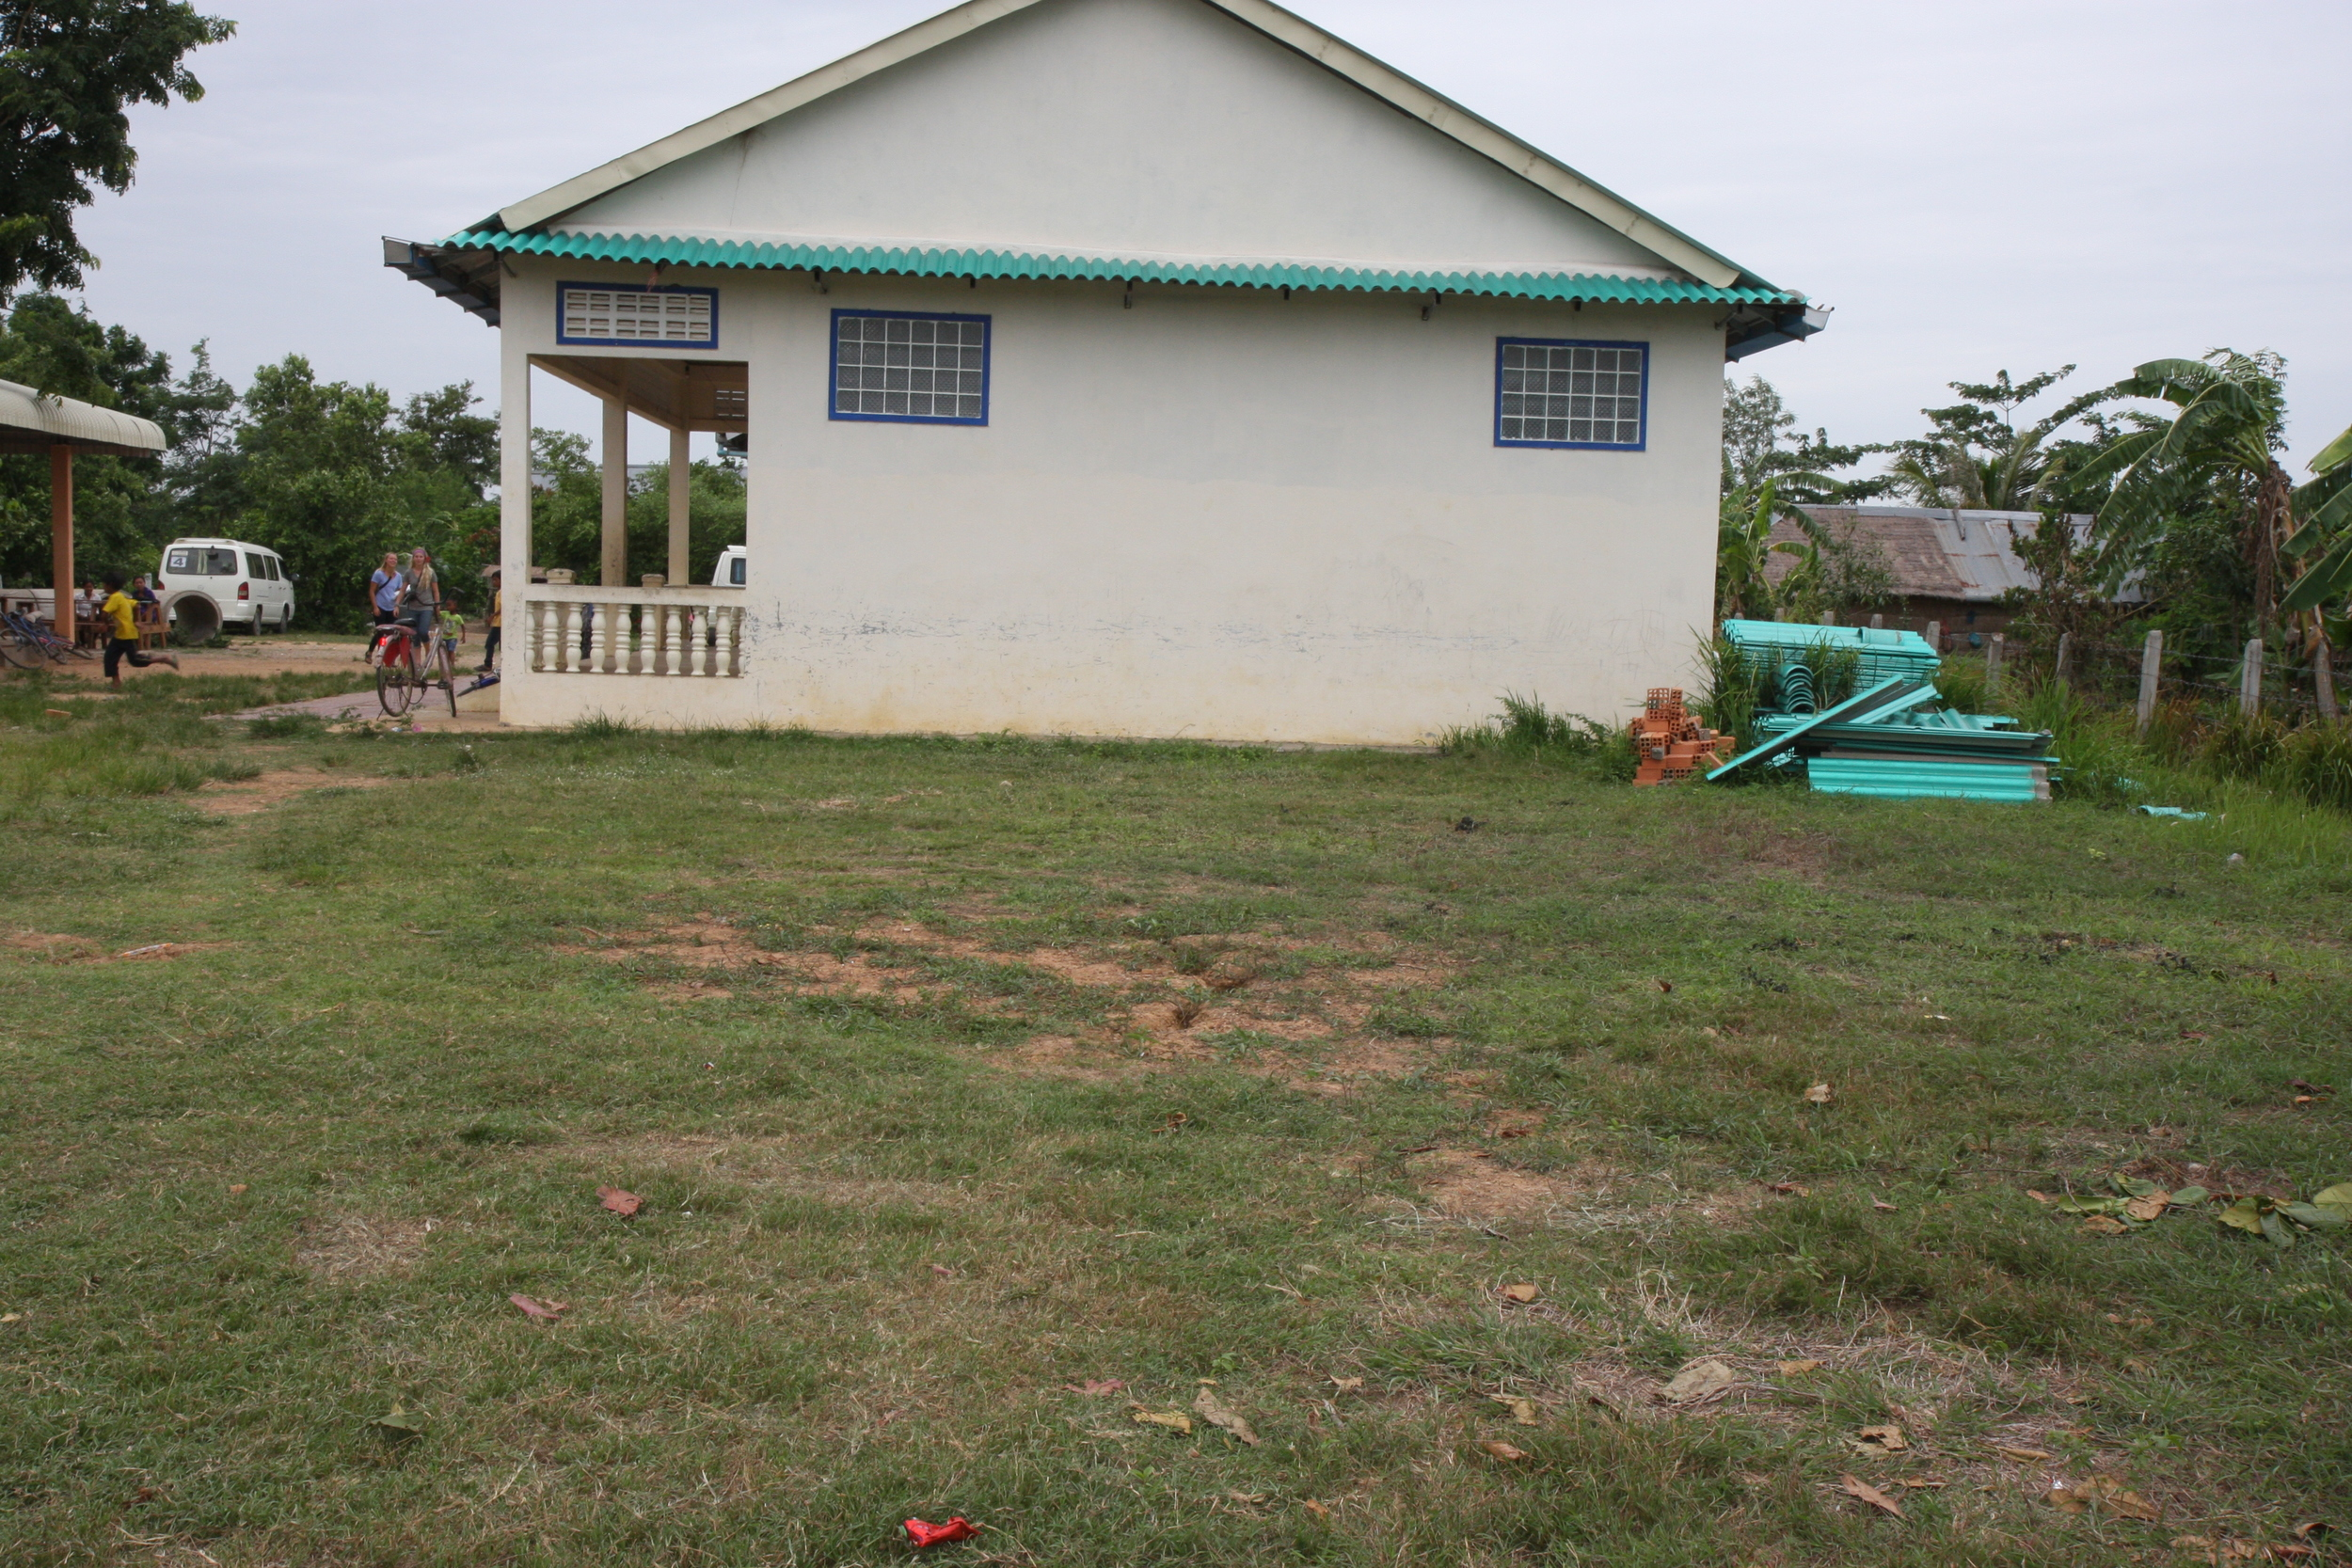 The school wall that will become a screen tonight...and the cut grass where we will sit and enjoy the evening with our village friends...